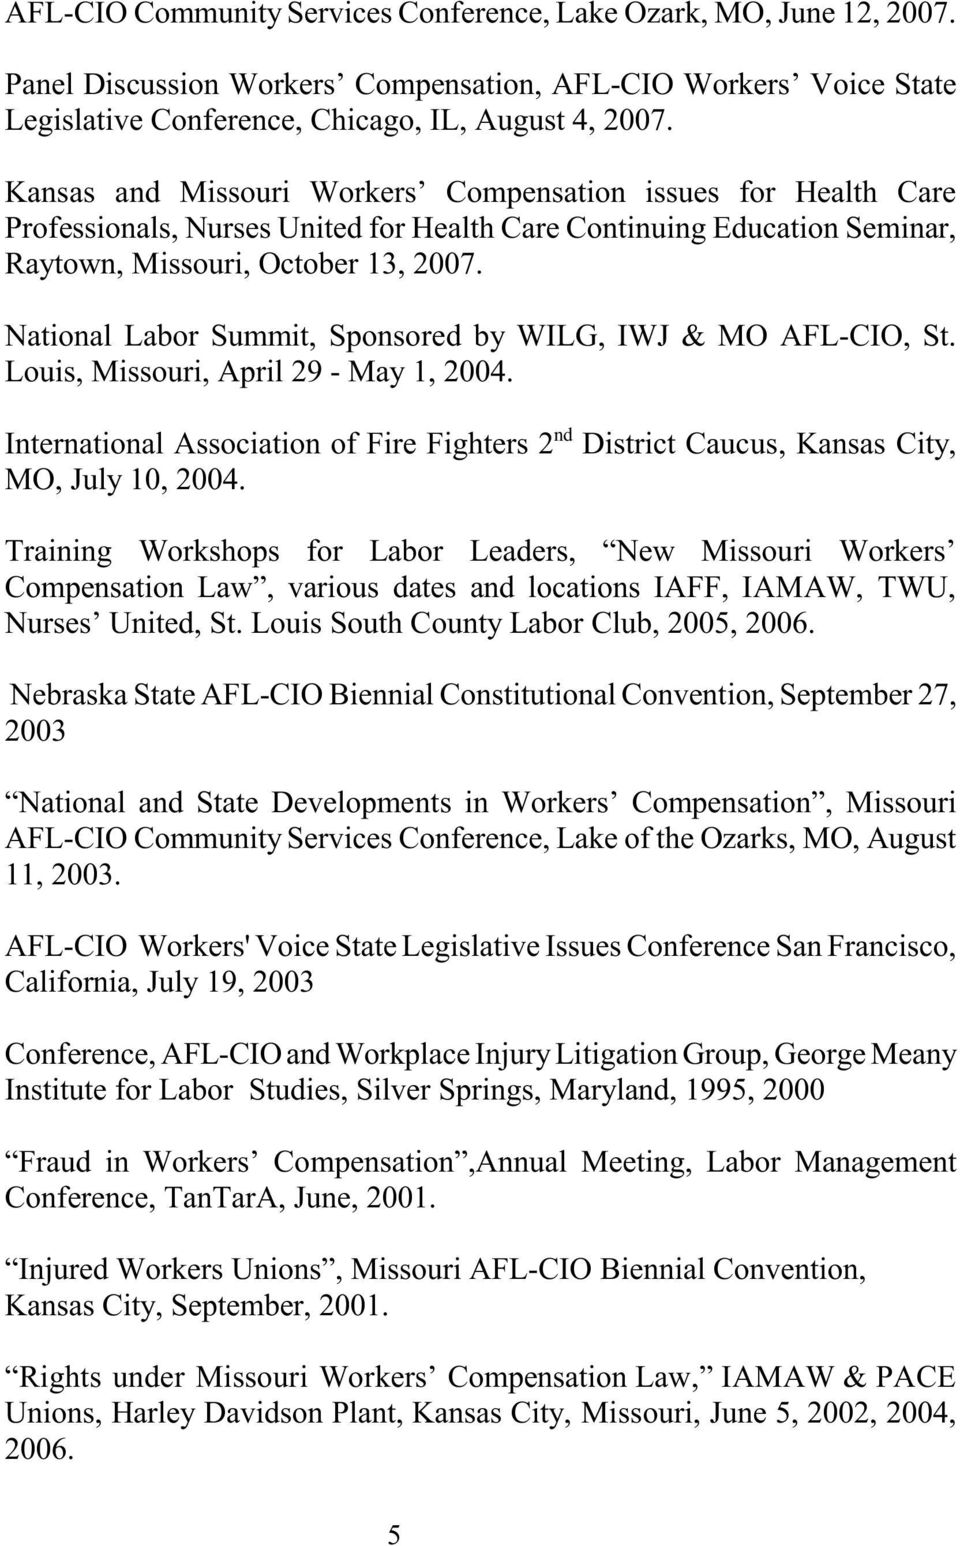 National Labor Summit, Sponsored by WILG, IWJ & MO AFL-CIO, St. Louis, Missouri, April 29 - May 1, 2004.